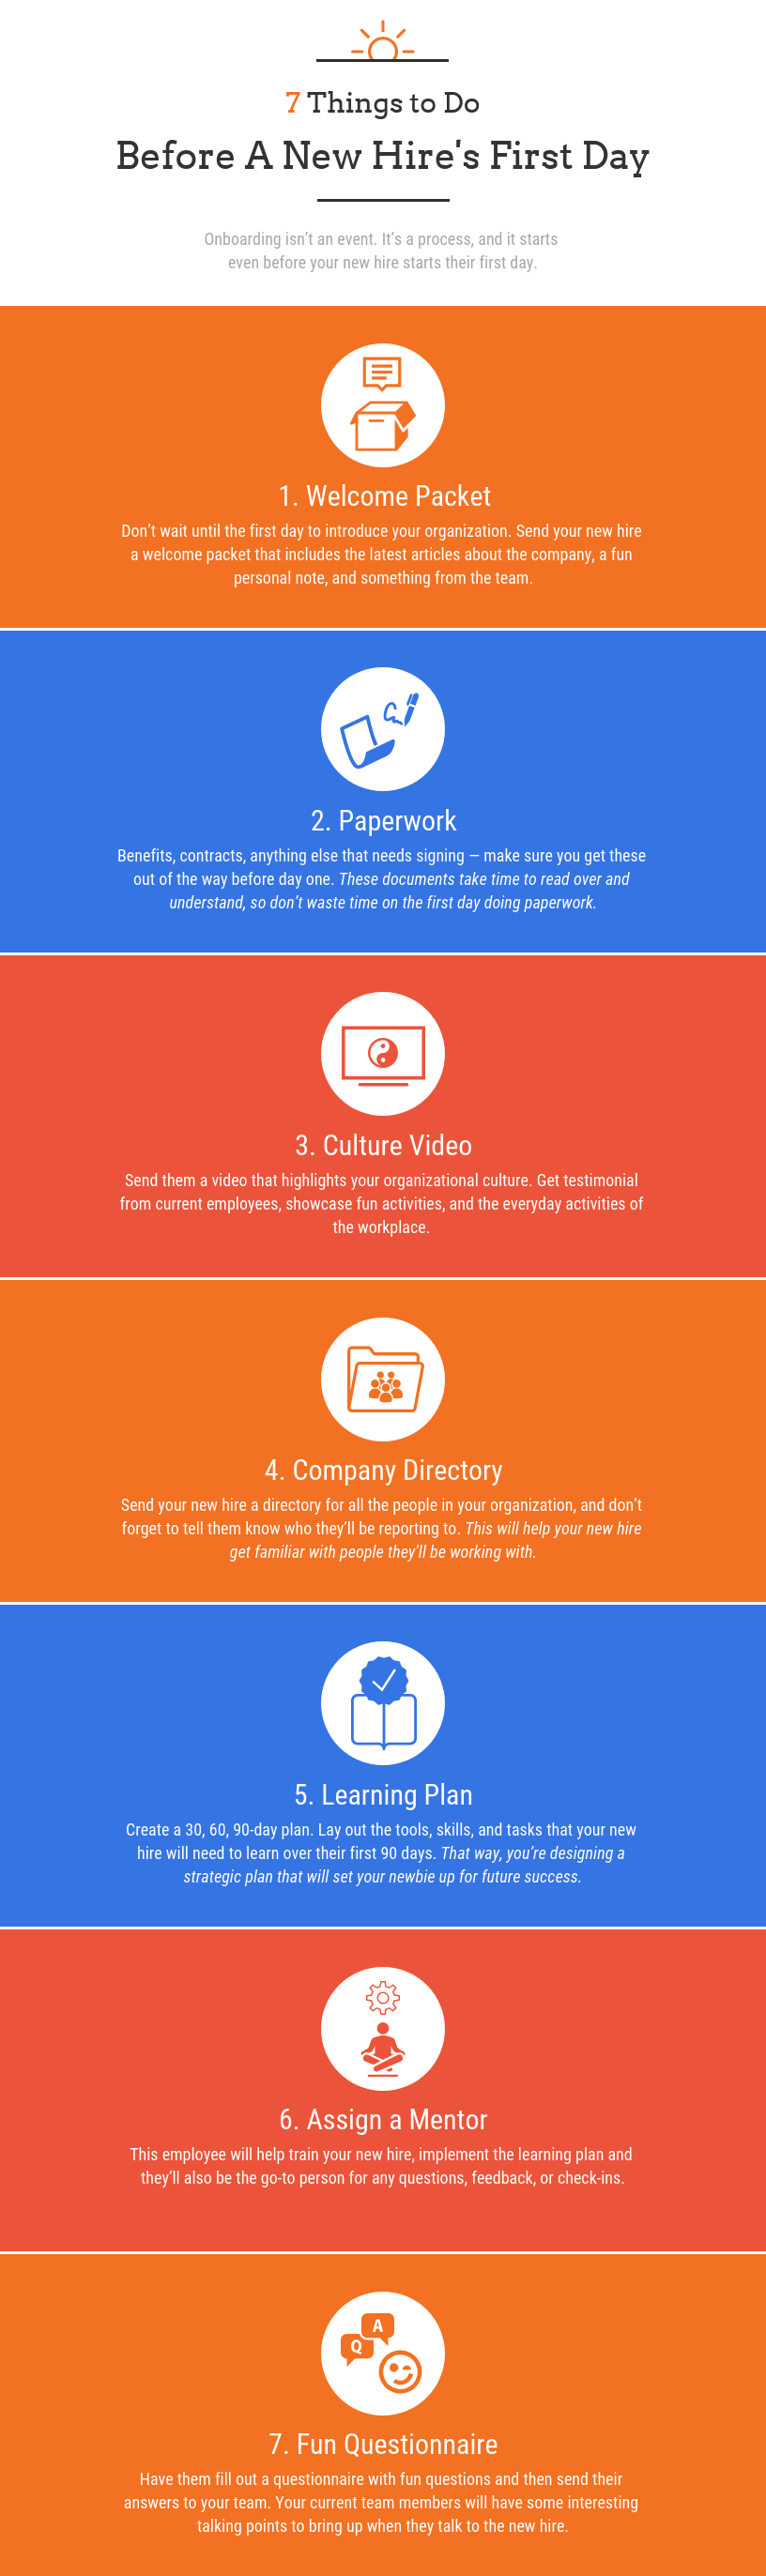 Employee Onboarding Infographic Template